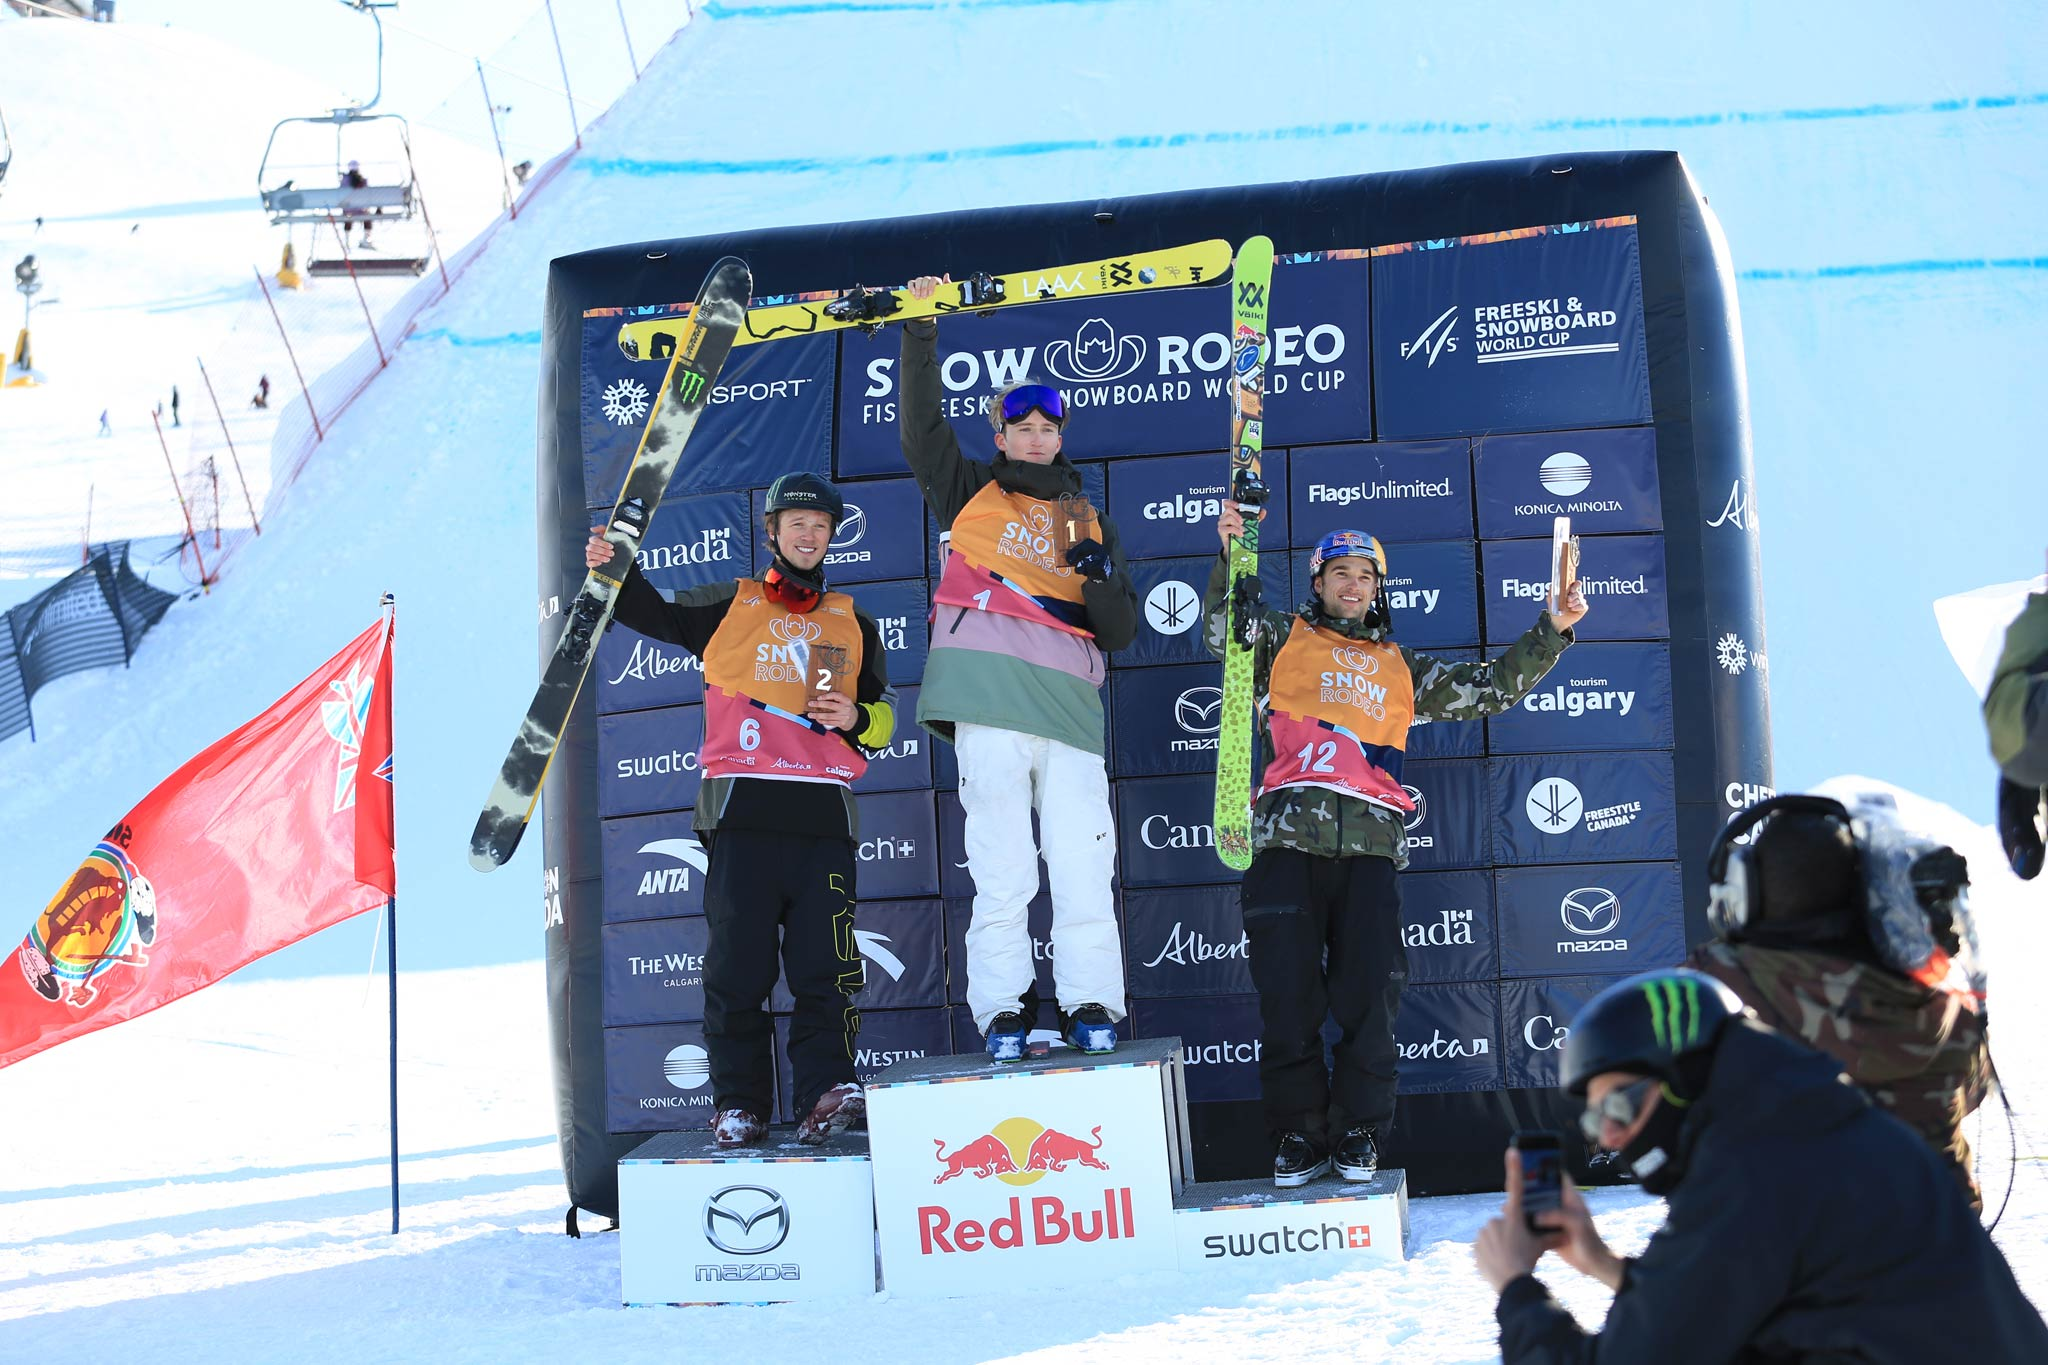 Die Top 3 Männer beim FIS Freestyle Slopestyle World Cup in Calgary, Kanada, 2020: Colby Stevenson (USA), Andri Ragettli (SUI), Nick Goepper (USA) - Foto: FIS Freestyle